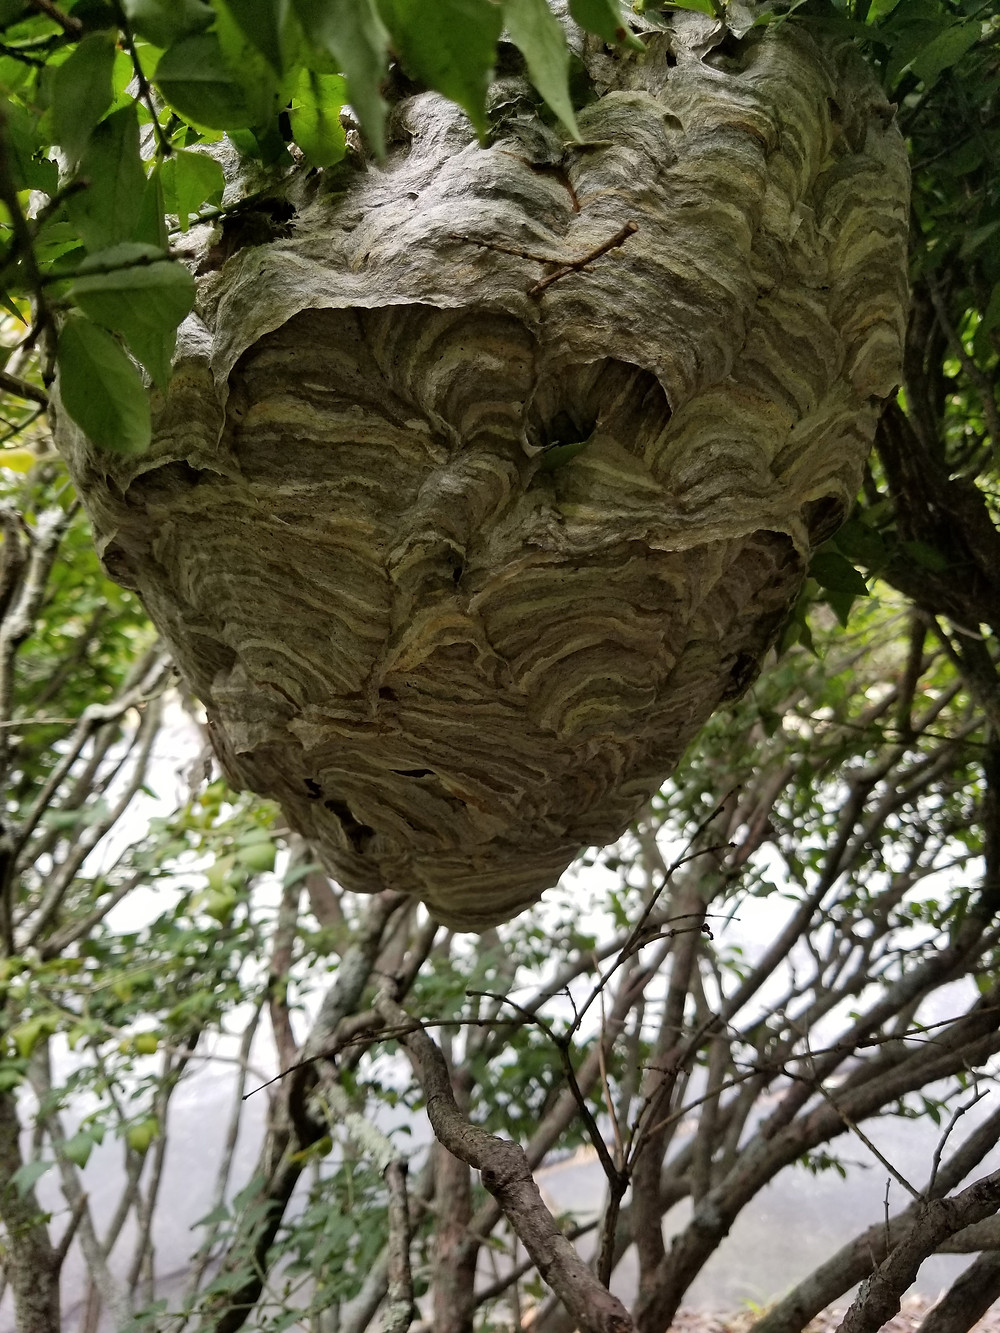 We have several species of yellow jackets in New England. The Bald-faced Hornet is one of these species. The nest is that easy to recognize football shaped paper nest found hanging in bushes, trees and maybe on the side of your home or business.  At the end of the summer the nest is at its full size as the bald-faced hornet anticipates colder weather and there are less young to raise in the nest. The nest will not be used again next year, and only fertilized females will survive the winter to become queens and build a new nest next year. All the workers of the nest will die during the first hard frost of the winter.  The adult Bald-face hornet is a ferocious protector of its nest and will aggressively defend their nest area.  The stingier is smooth and rounded allowing it the ability to sting several times. By the end of the summer a colony may have hundreds of workers who are aggressively defending their nest area.  If you find a nest like this, you may need some help to remove it.  We can help you with this, just give us a call.